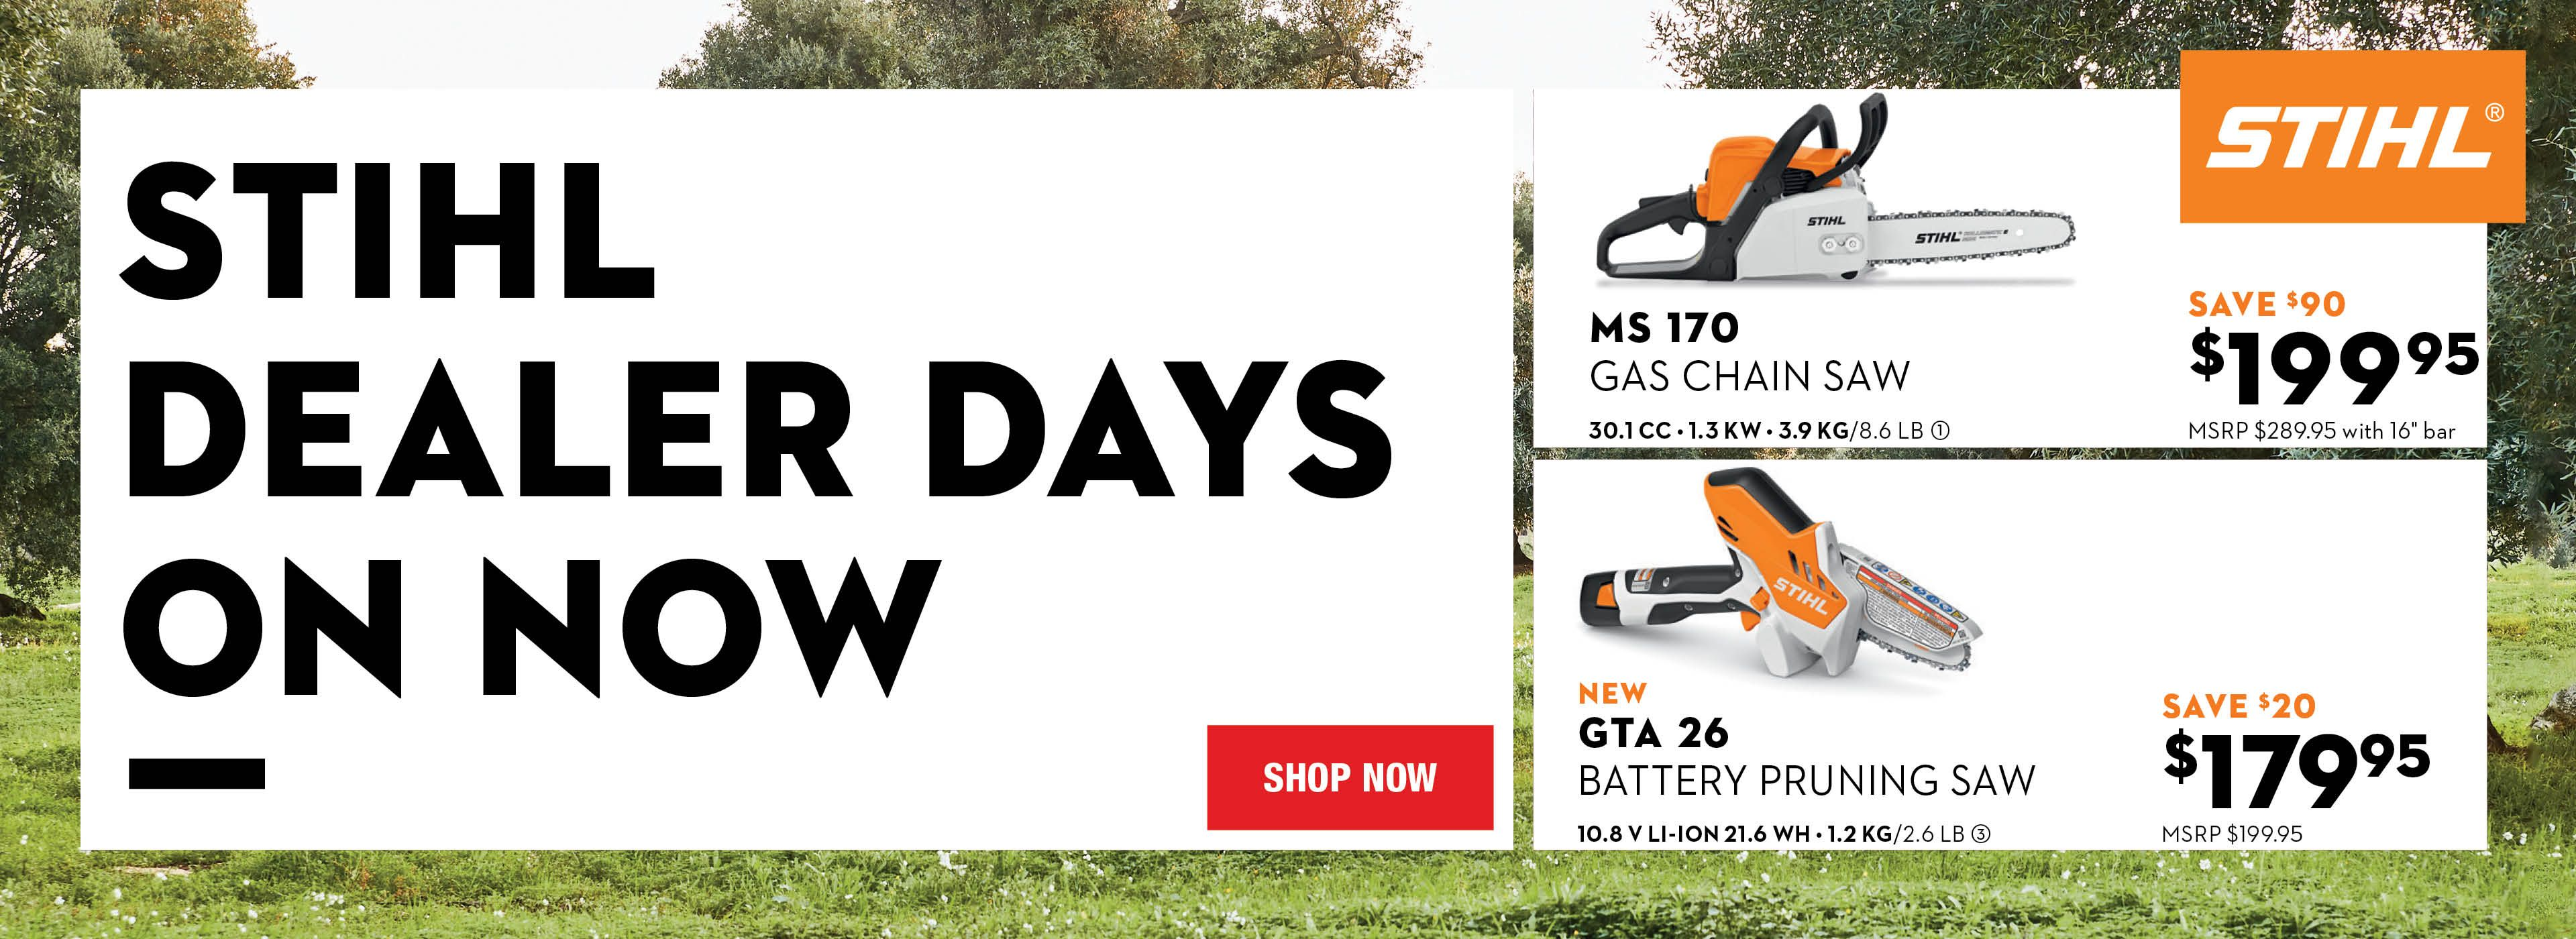 STIHL Dealer Days Sale 2020